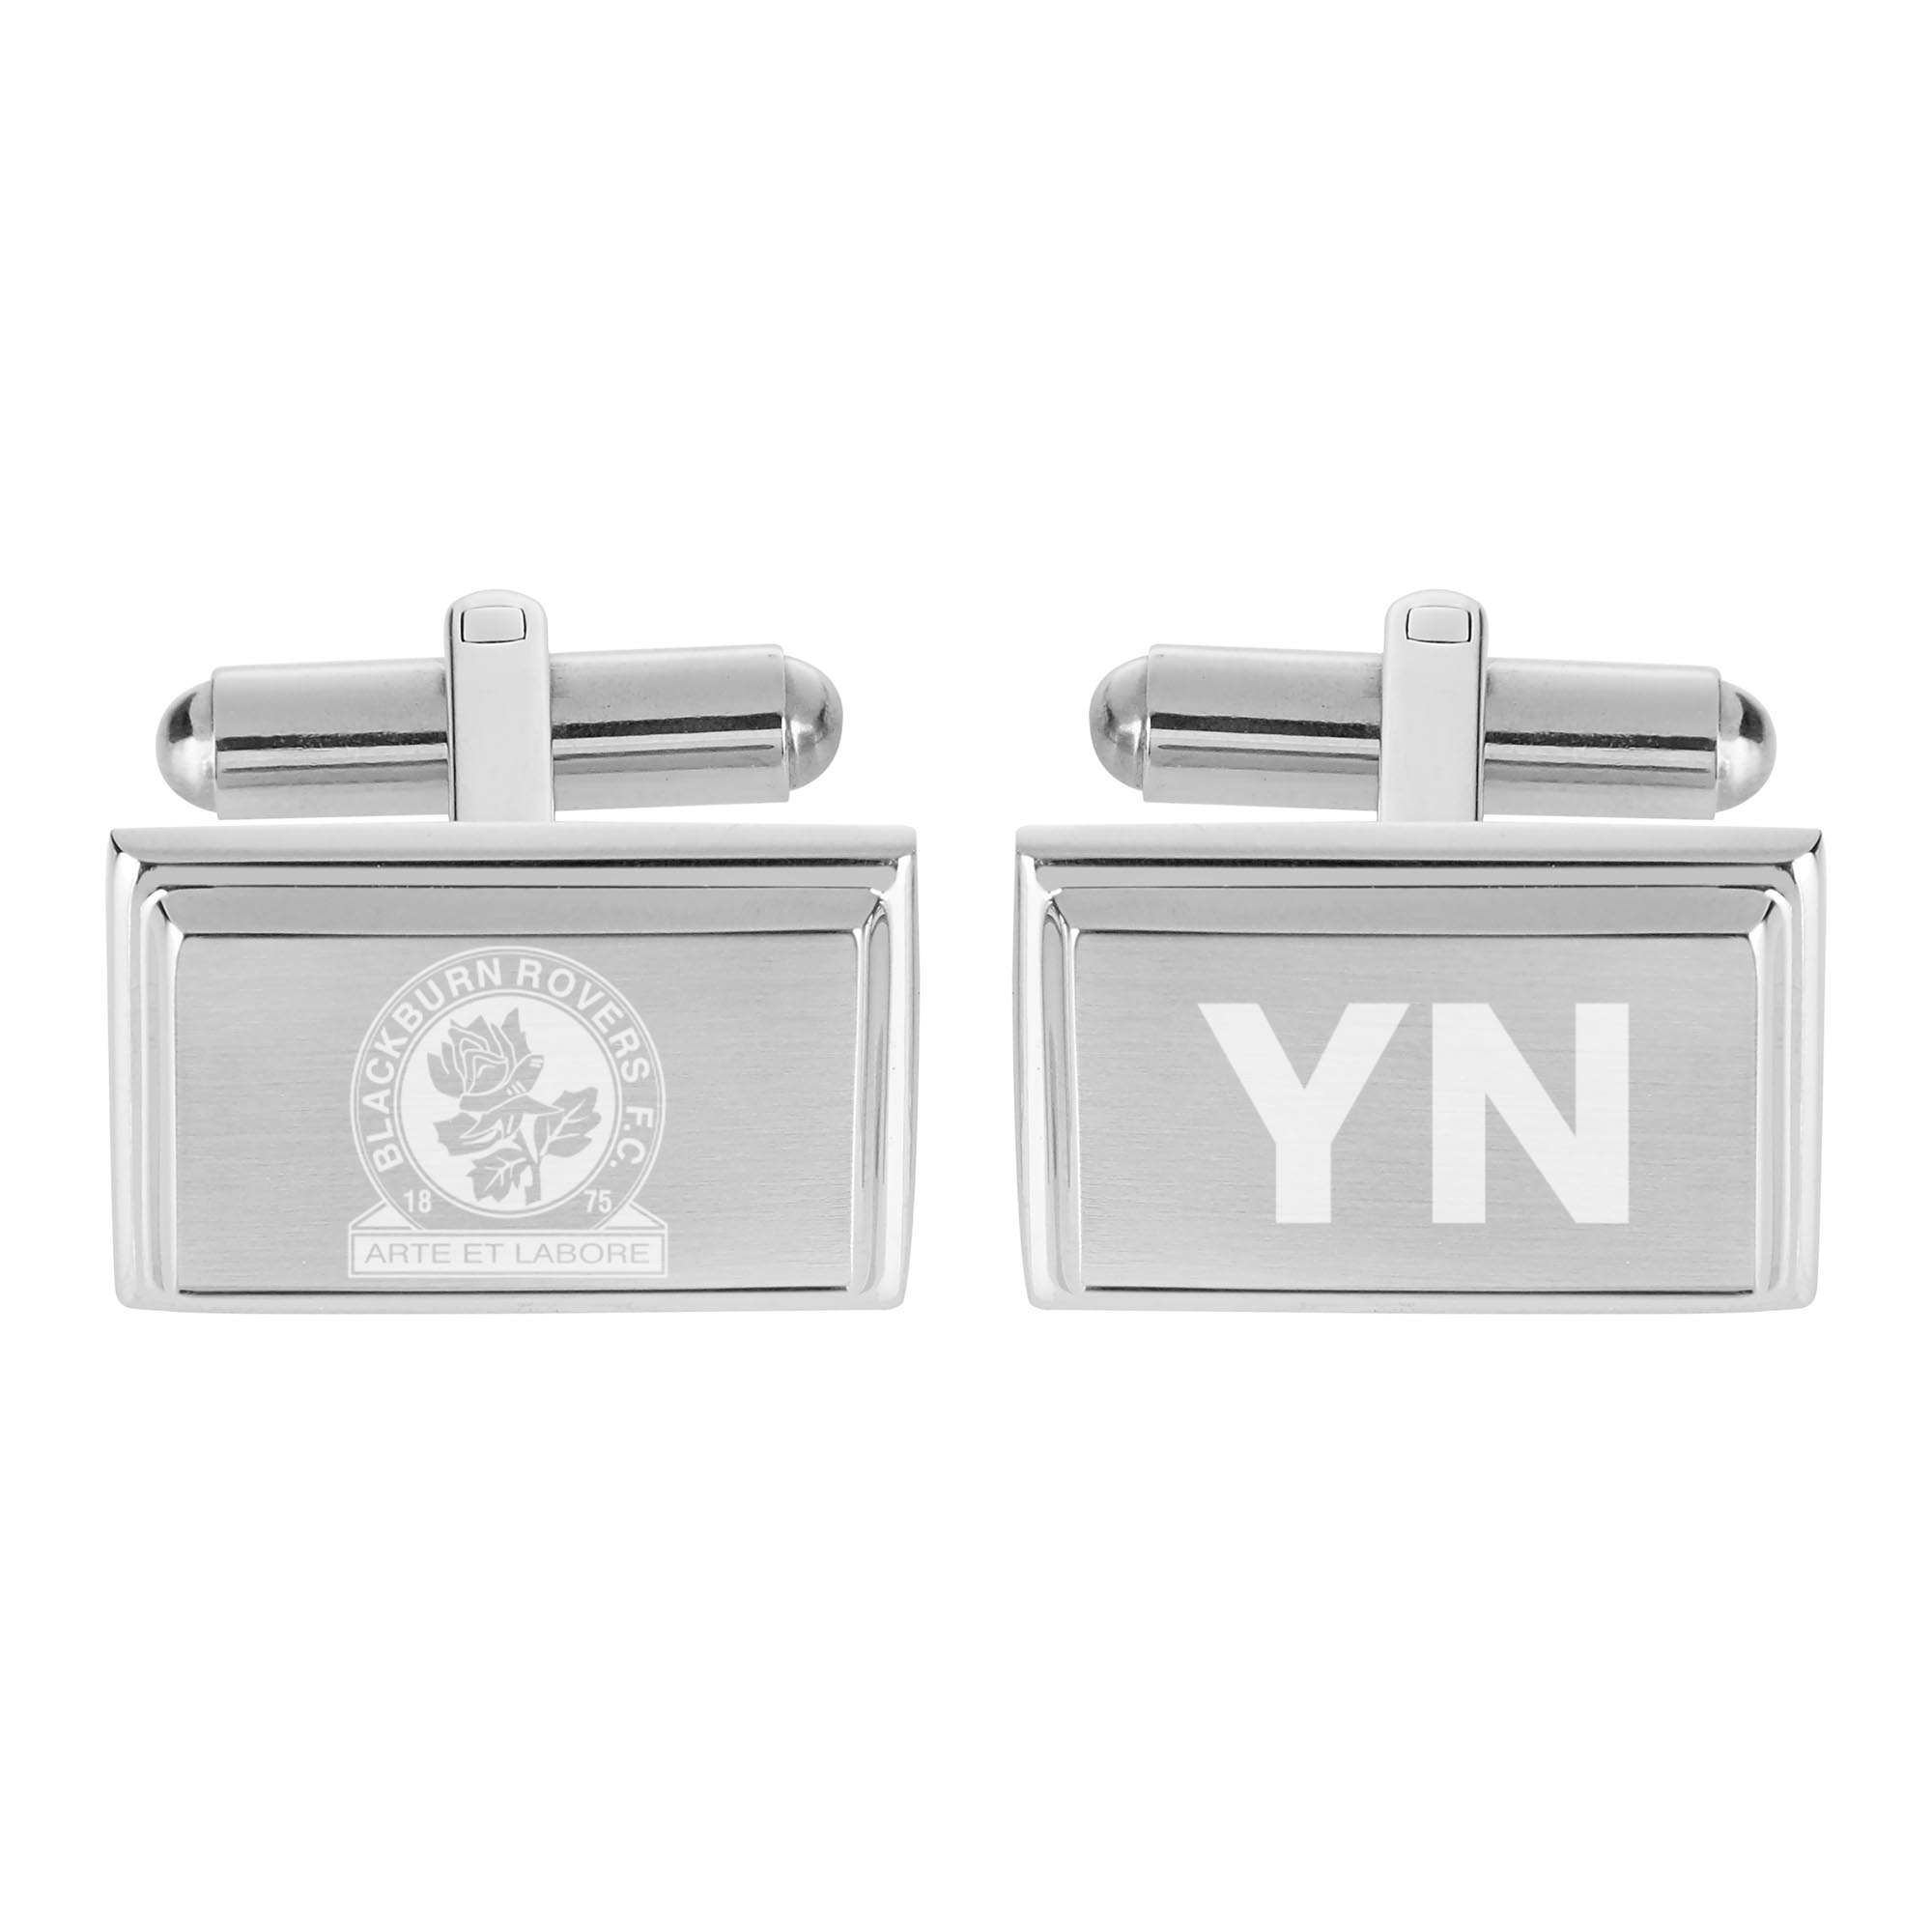 Blackburn Rovers FC Crest Cufflinks